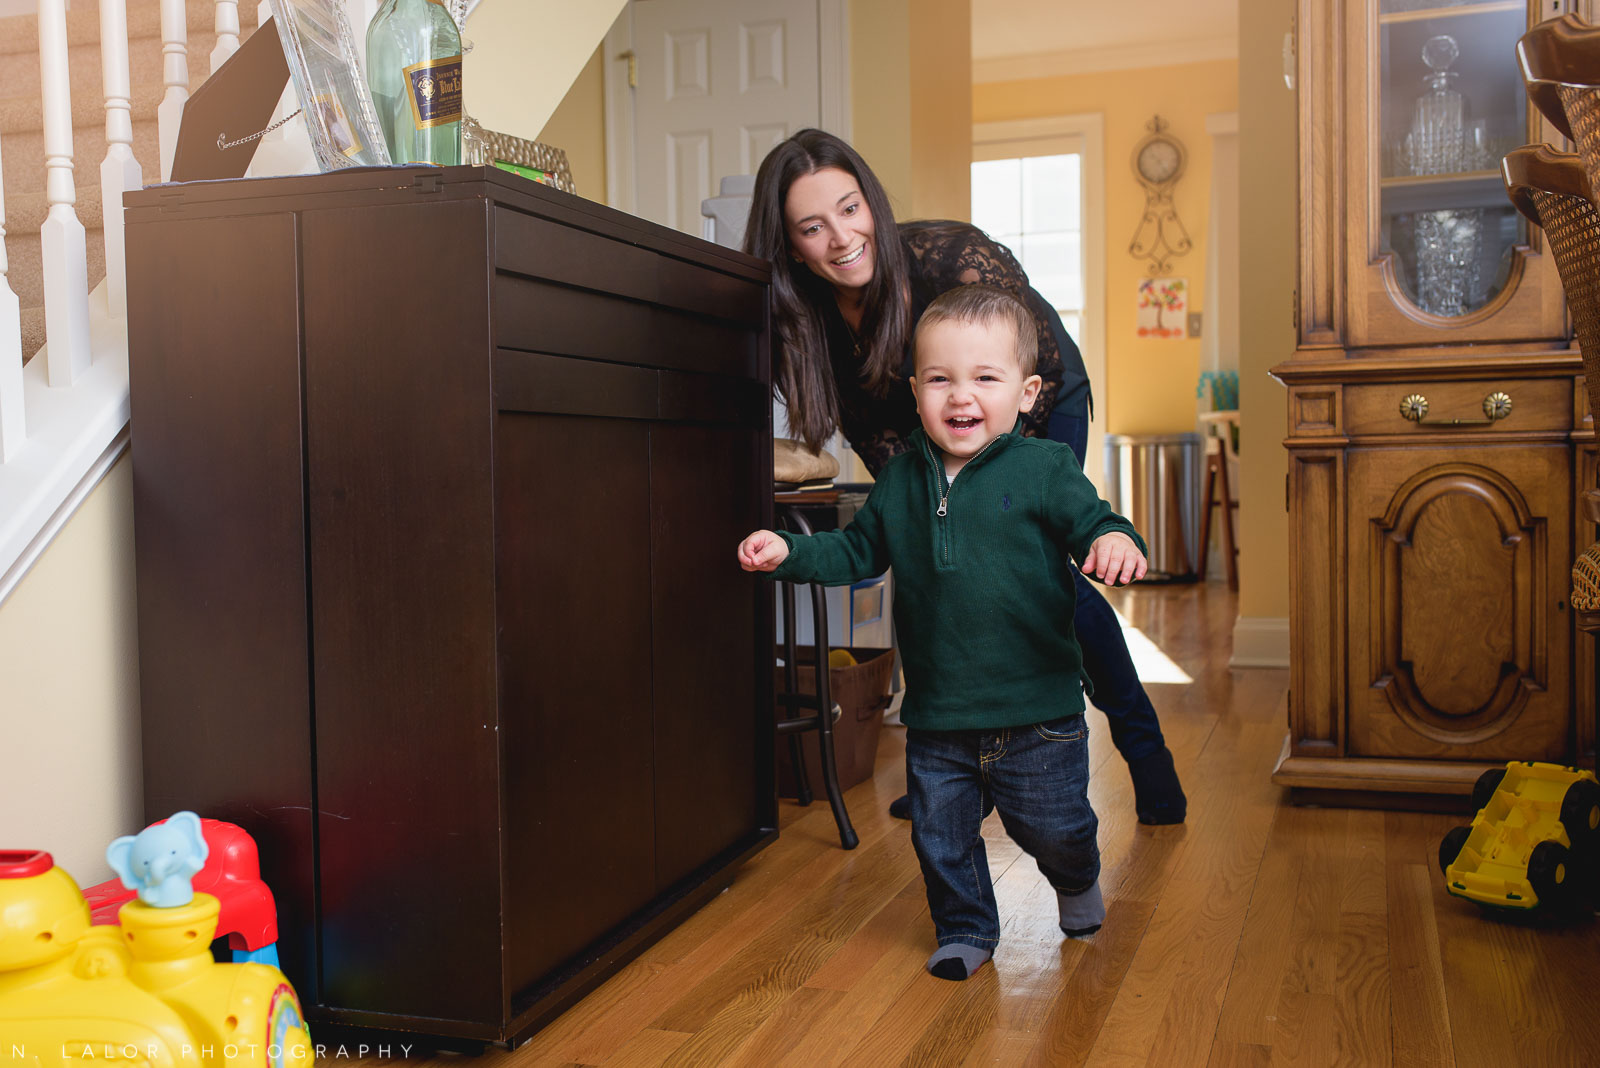 Running around after a toddler. Candid family life photo by N. Lalor Photography.